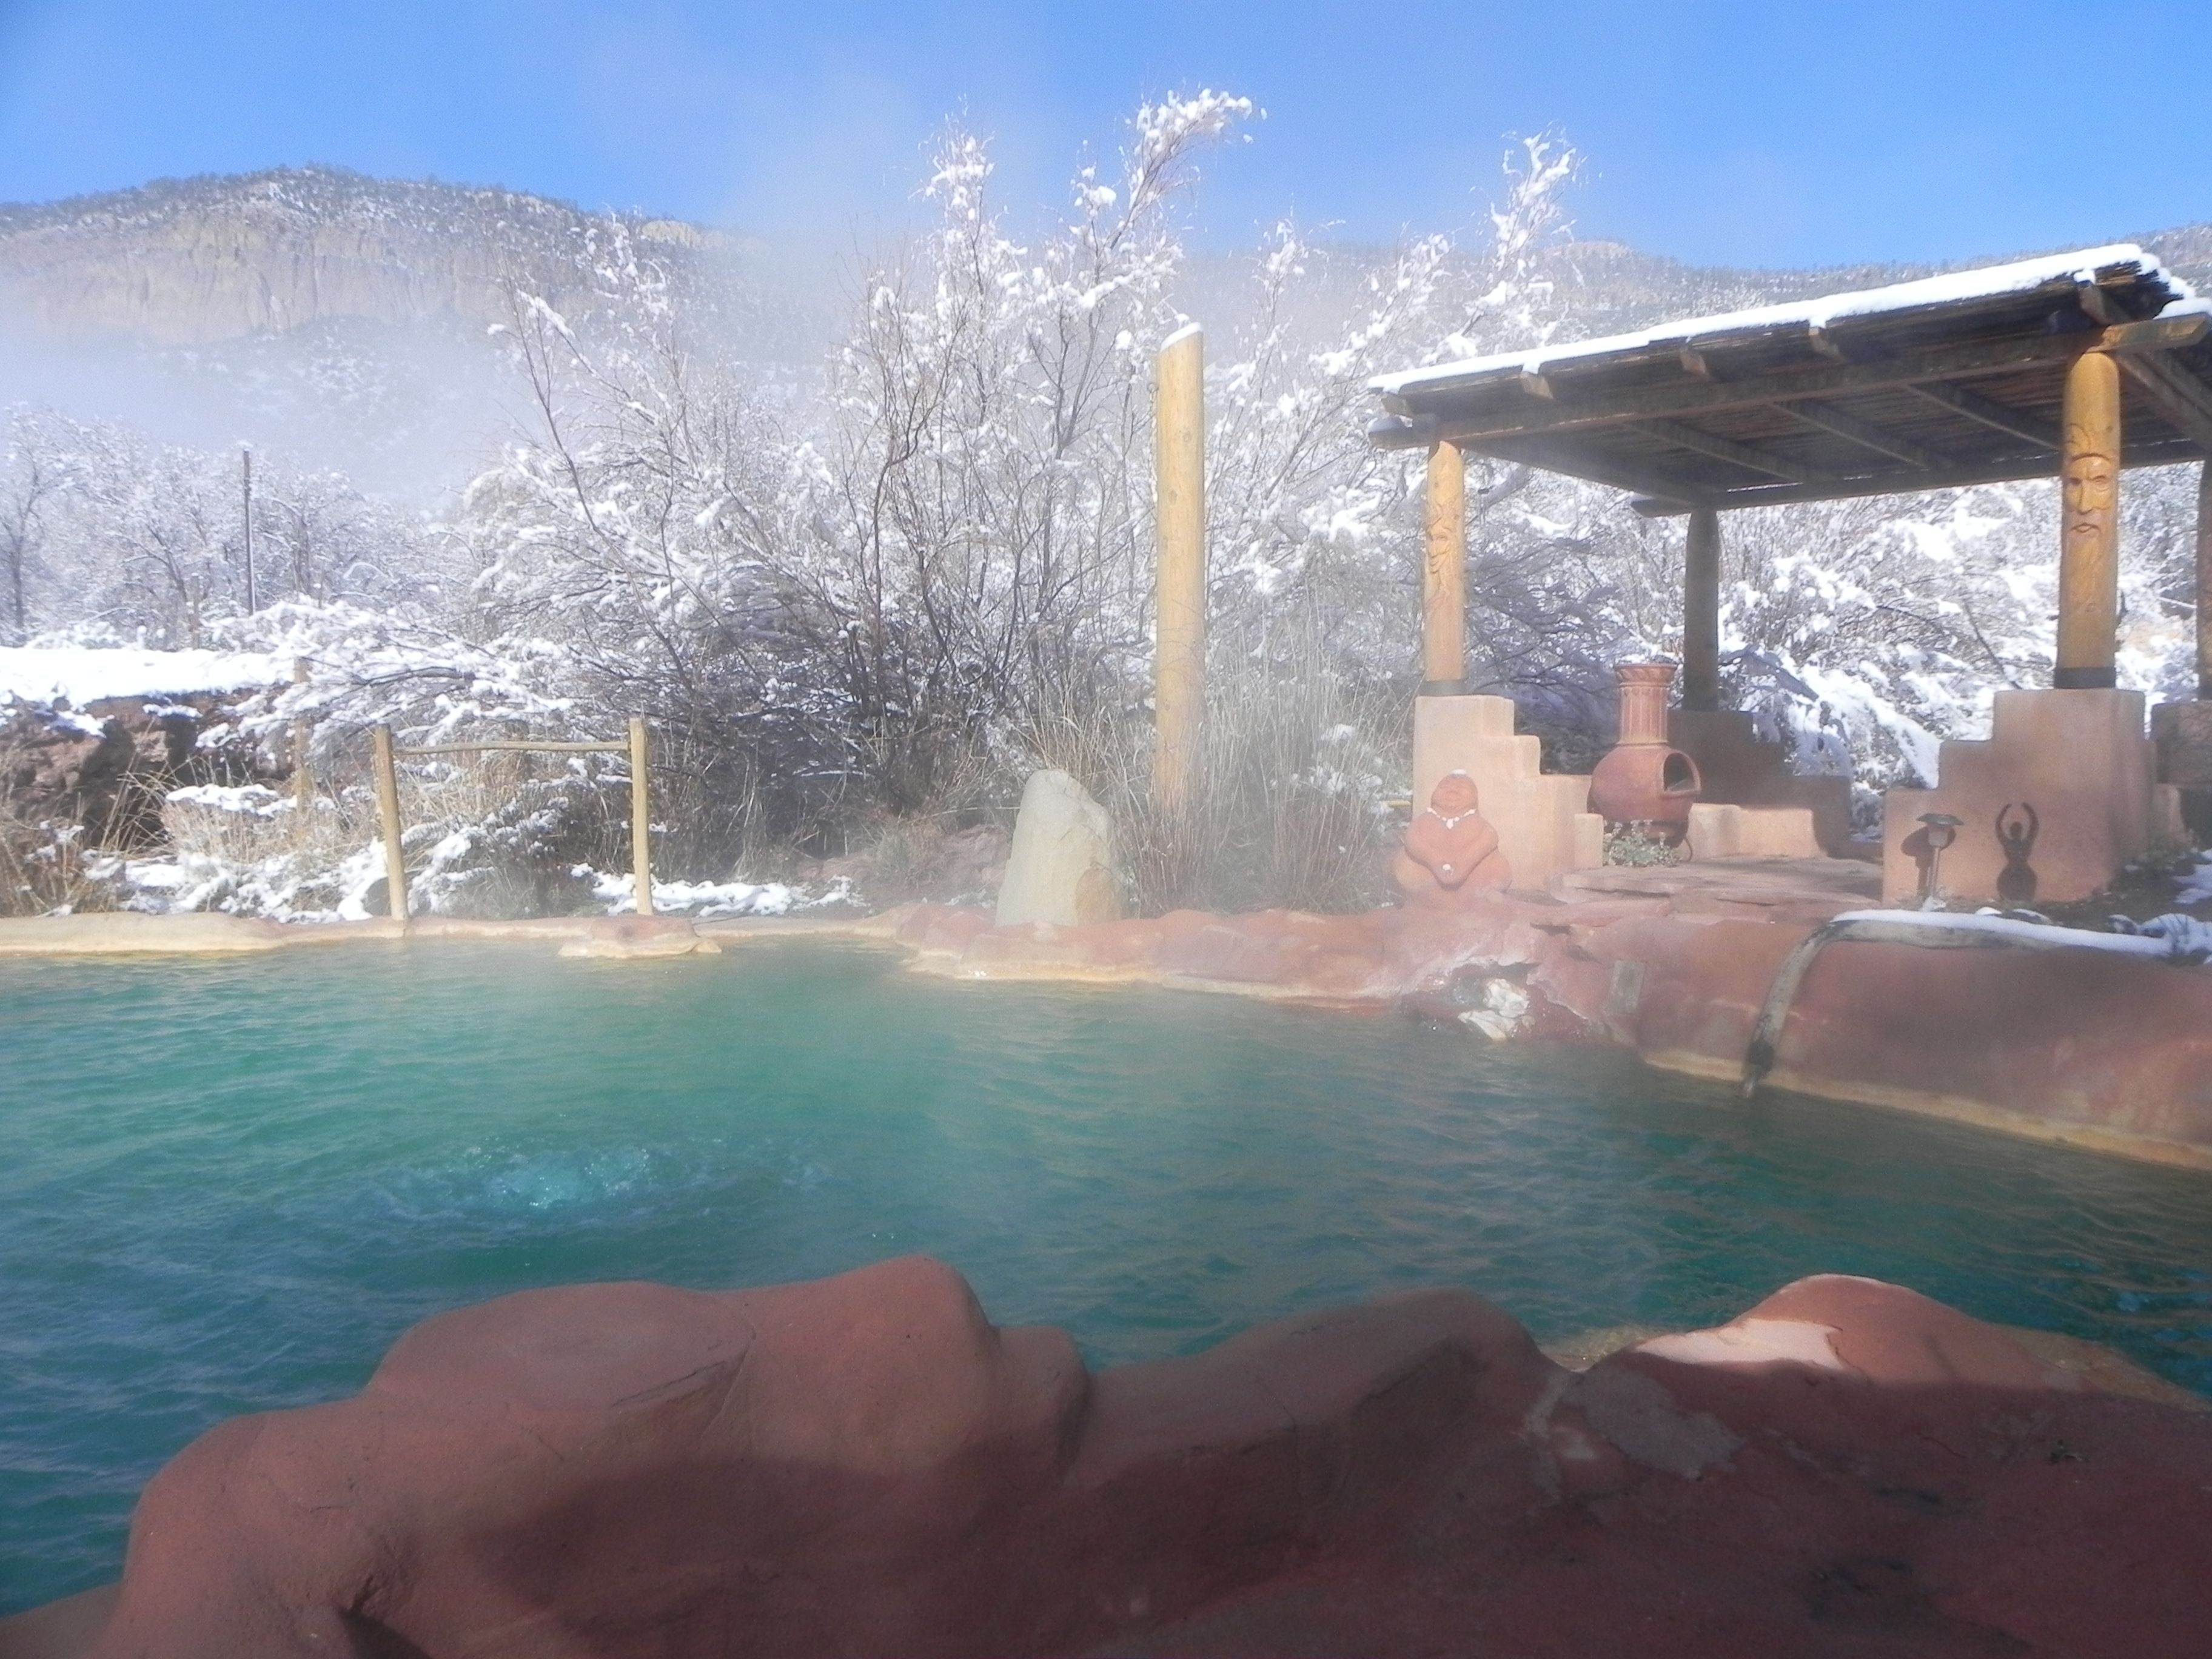 View from above - Picture of Spence Hot Springs, Jemez